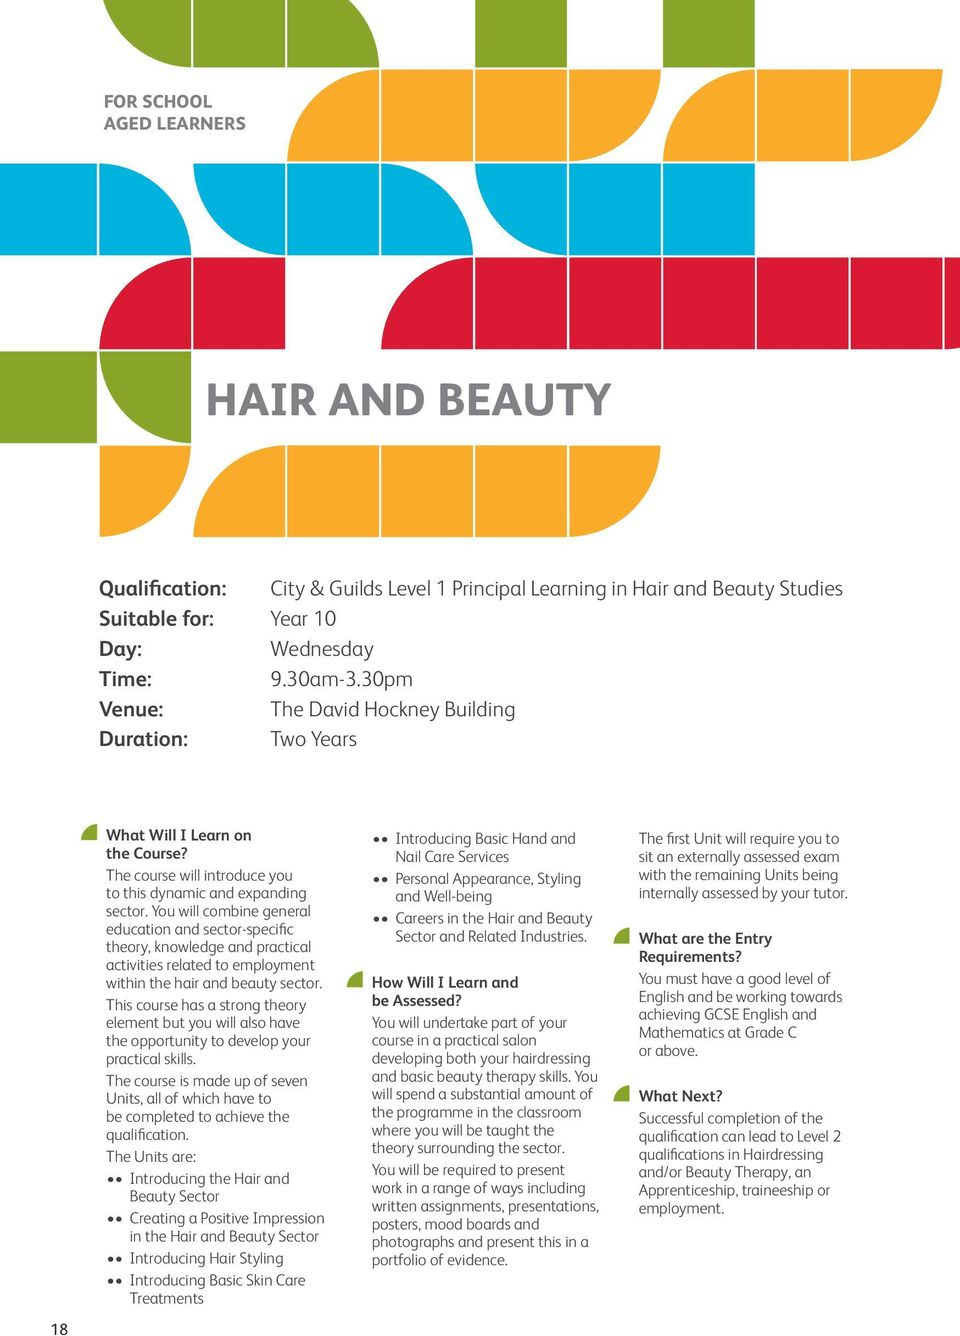 You will combine general education and sector-specific theory, knowledge and practical activities related to employment within the hair and beauty sector.